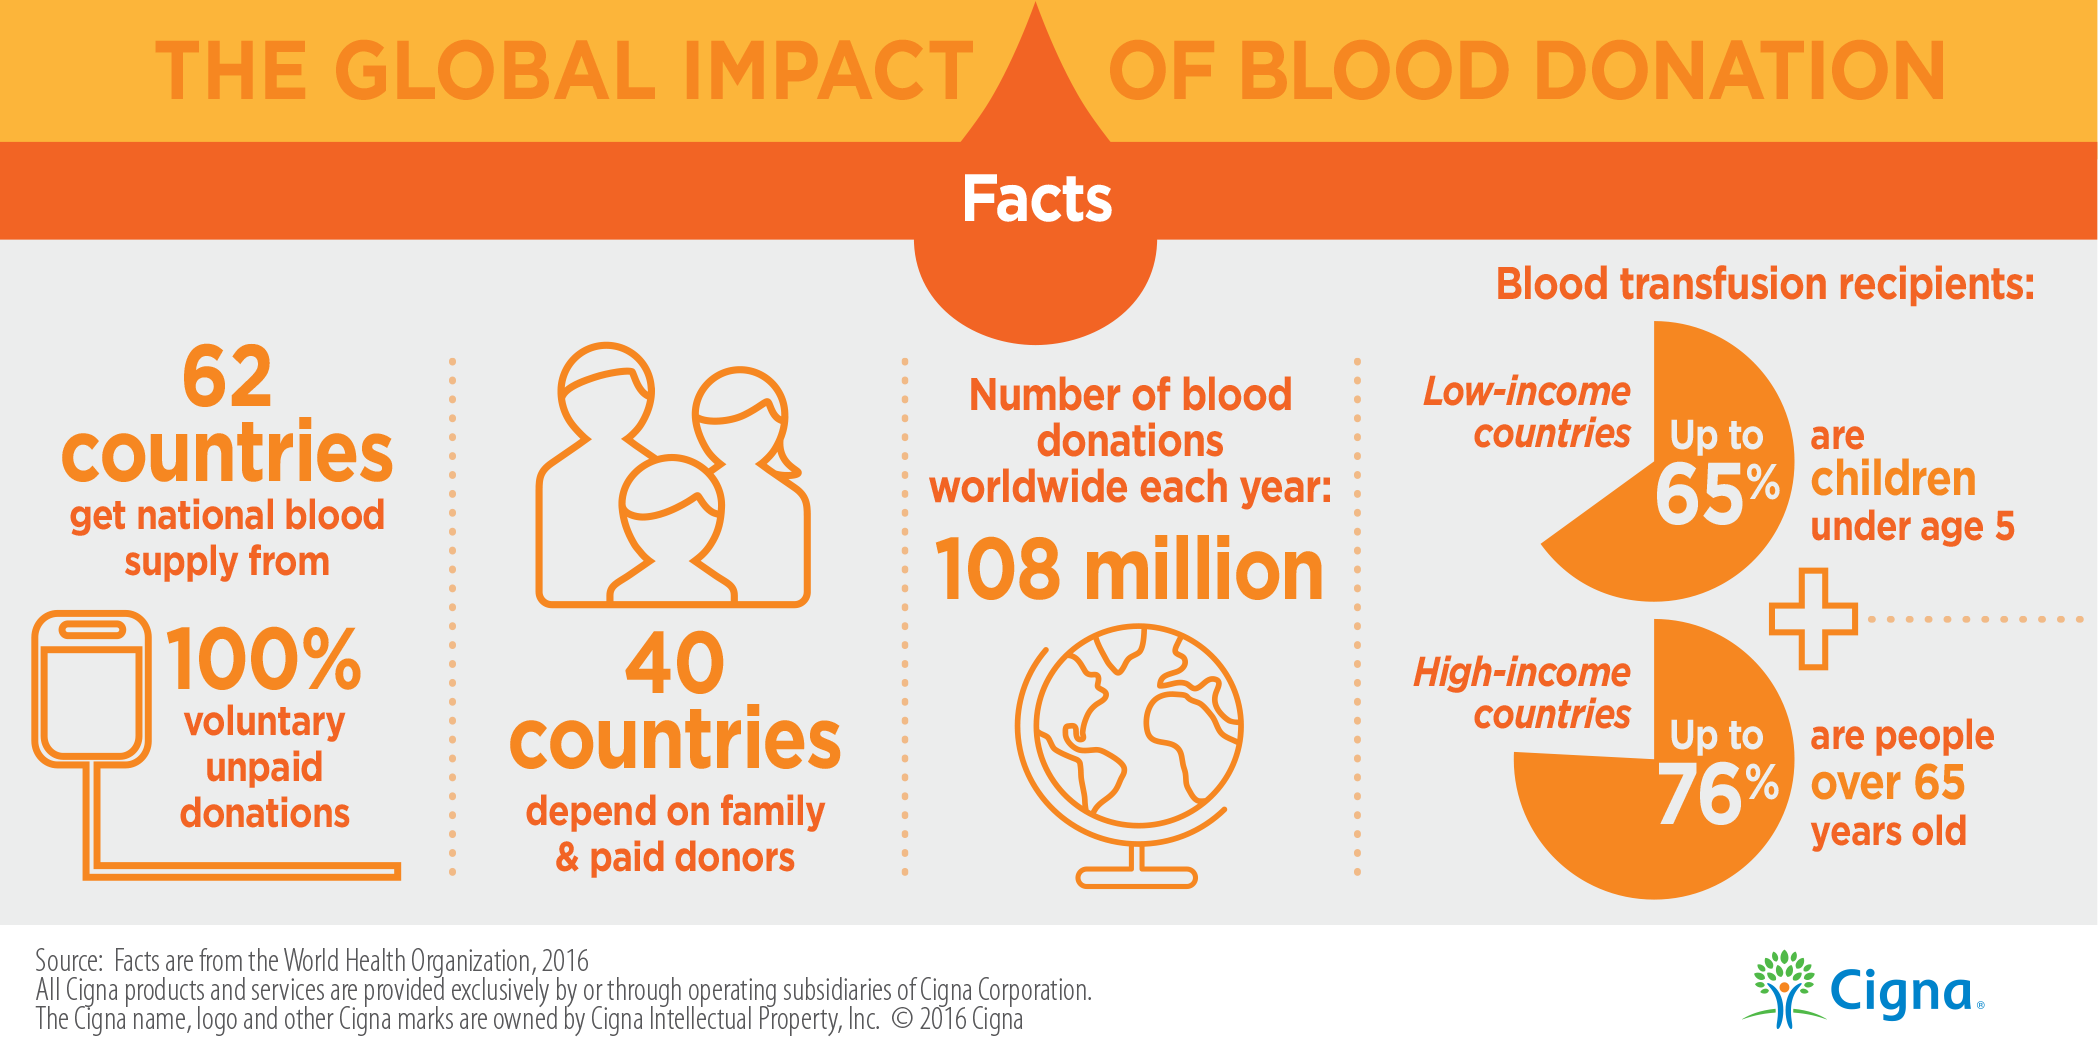 Facts About Blood Donation